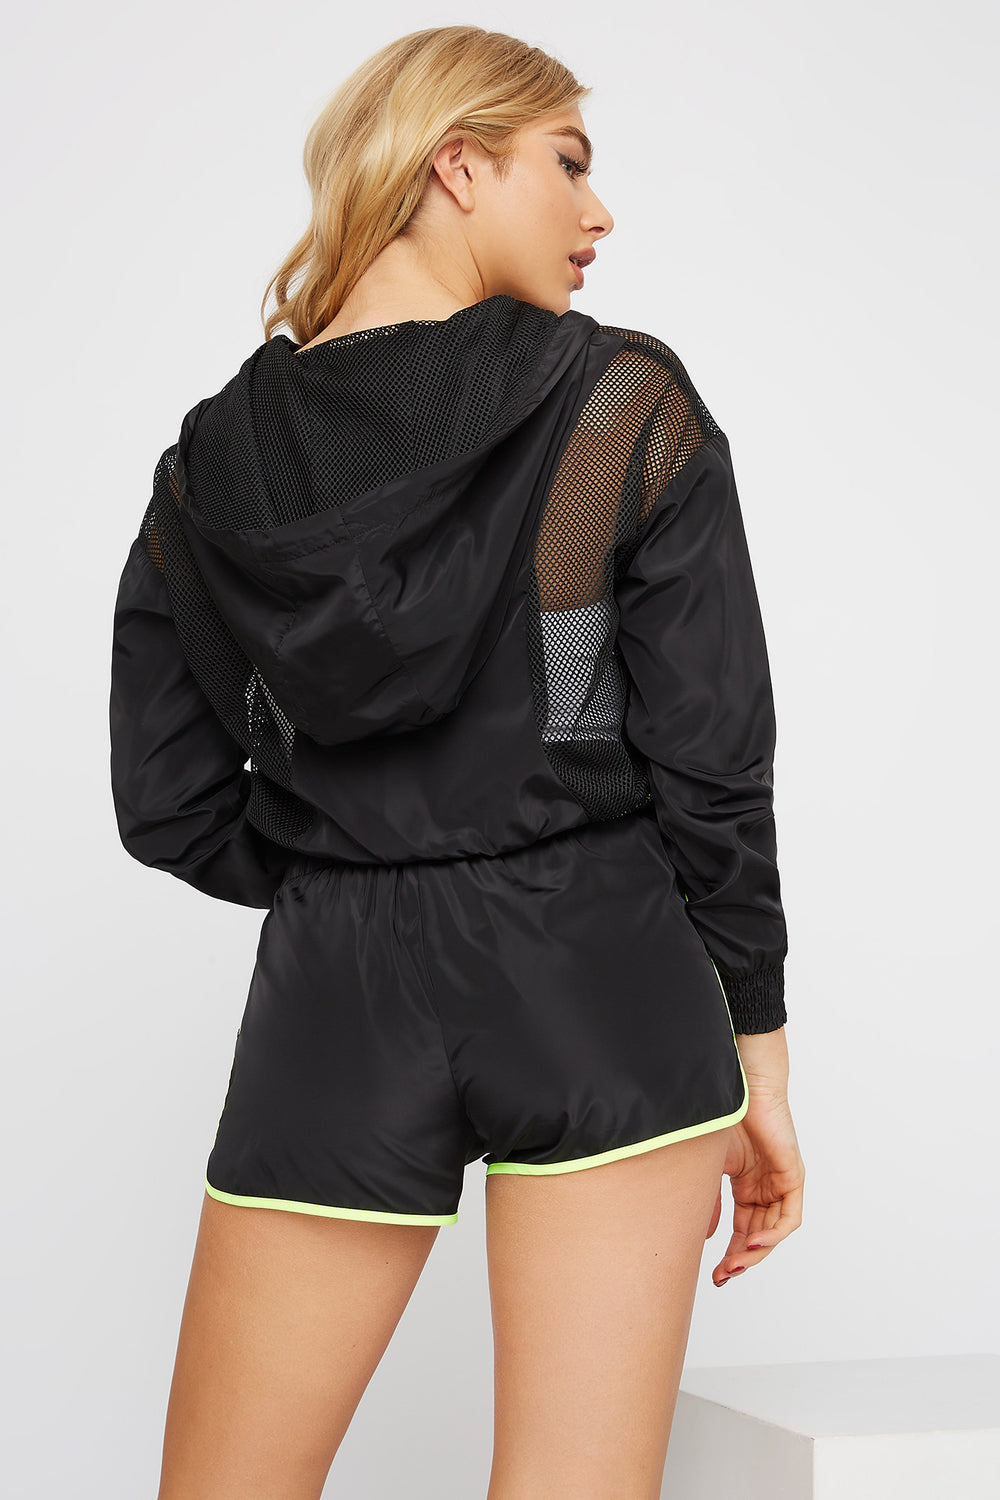 Net Insert Neon Piping Windbreaker Short Black